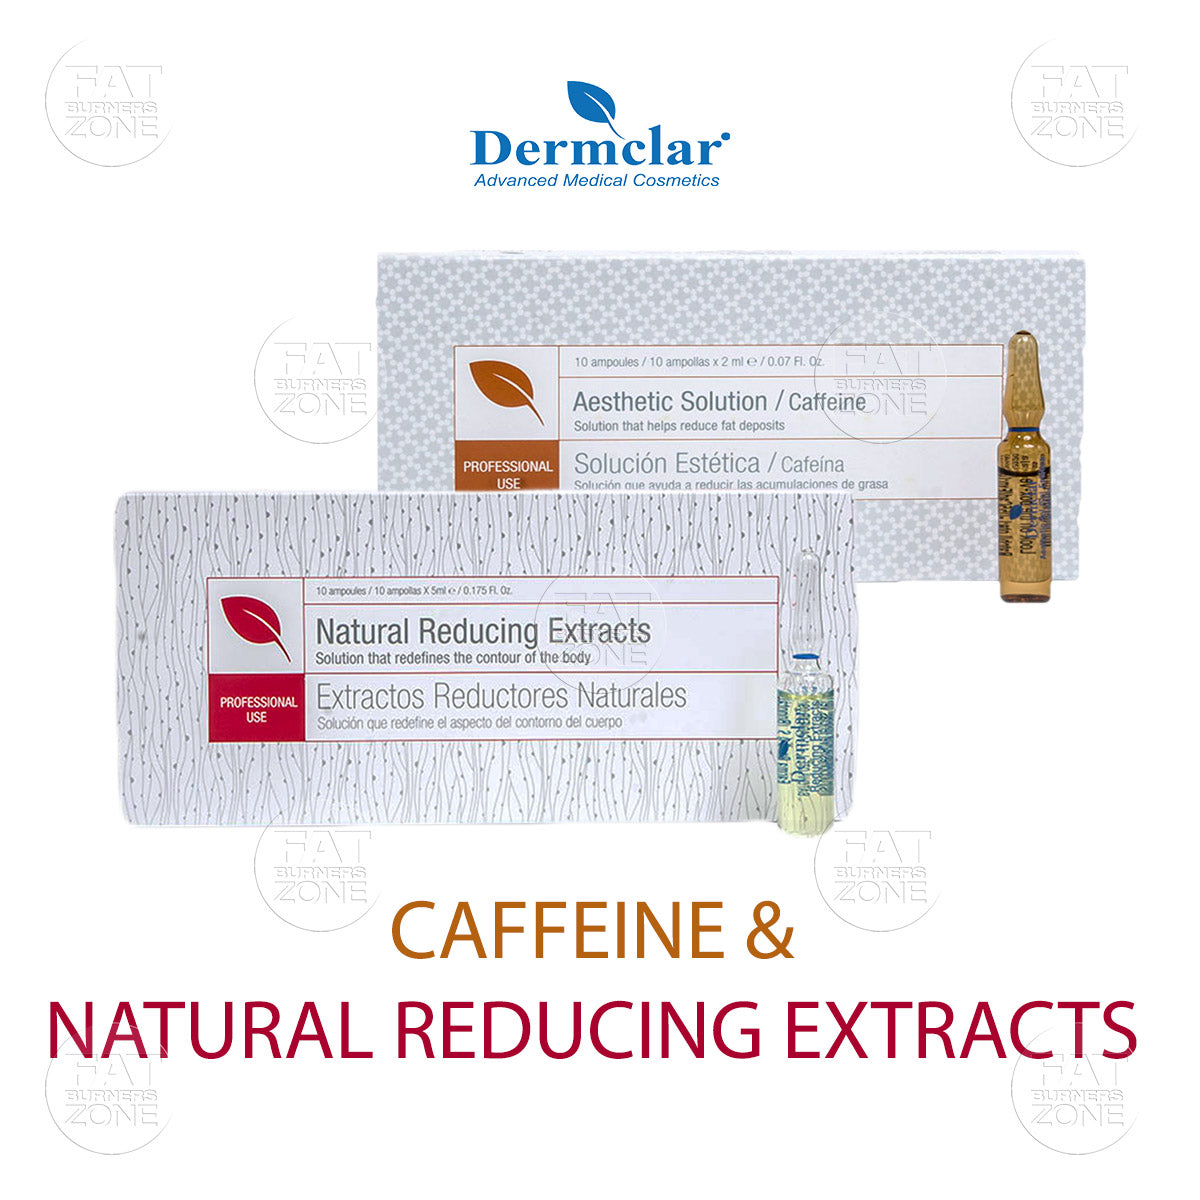 Caffeine & Natural Reducing Extracts By Dermclar